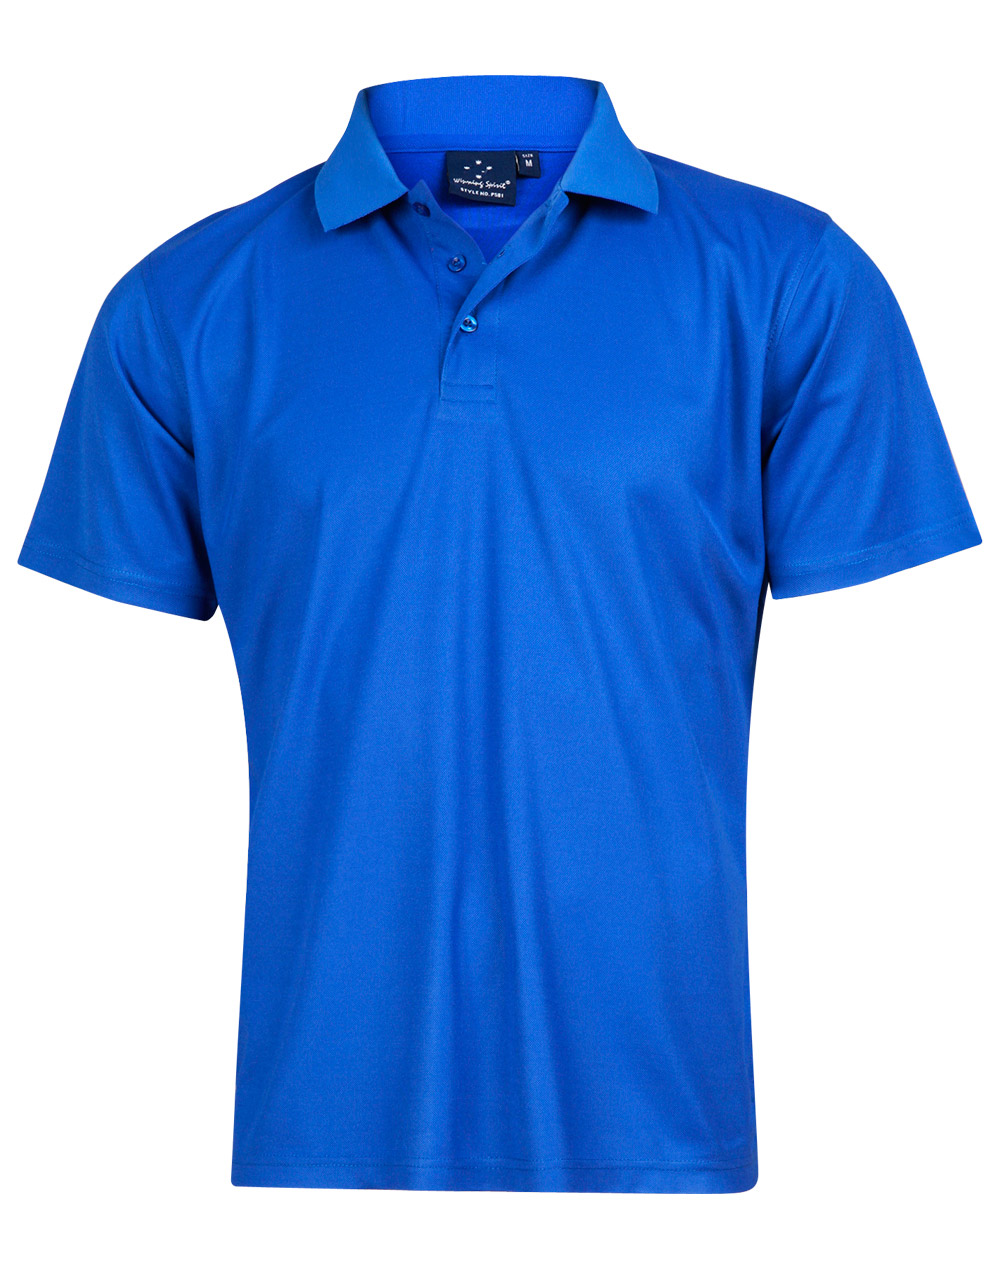 Ps81k verve kids polo shirt for Personalized polo shirts for toddlers